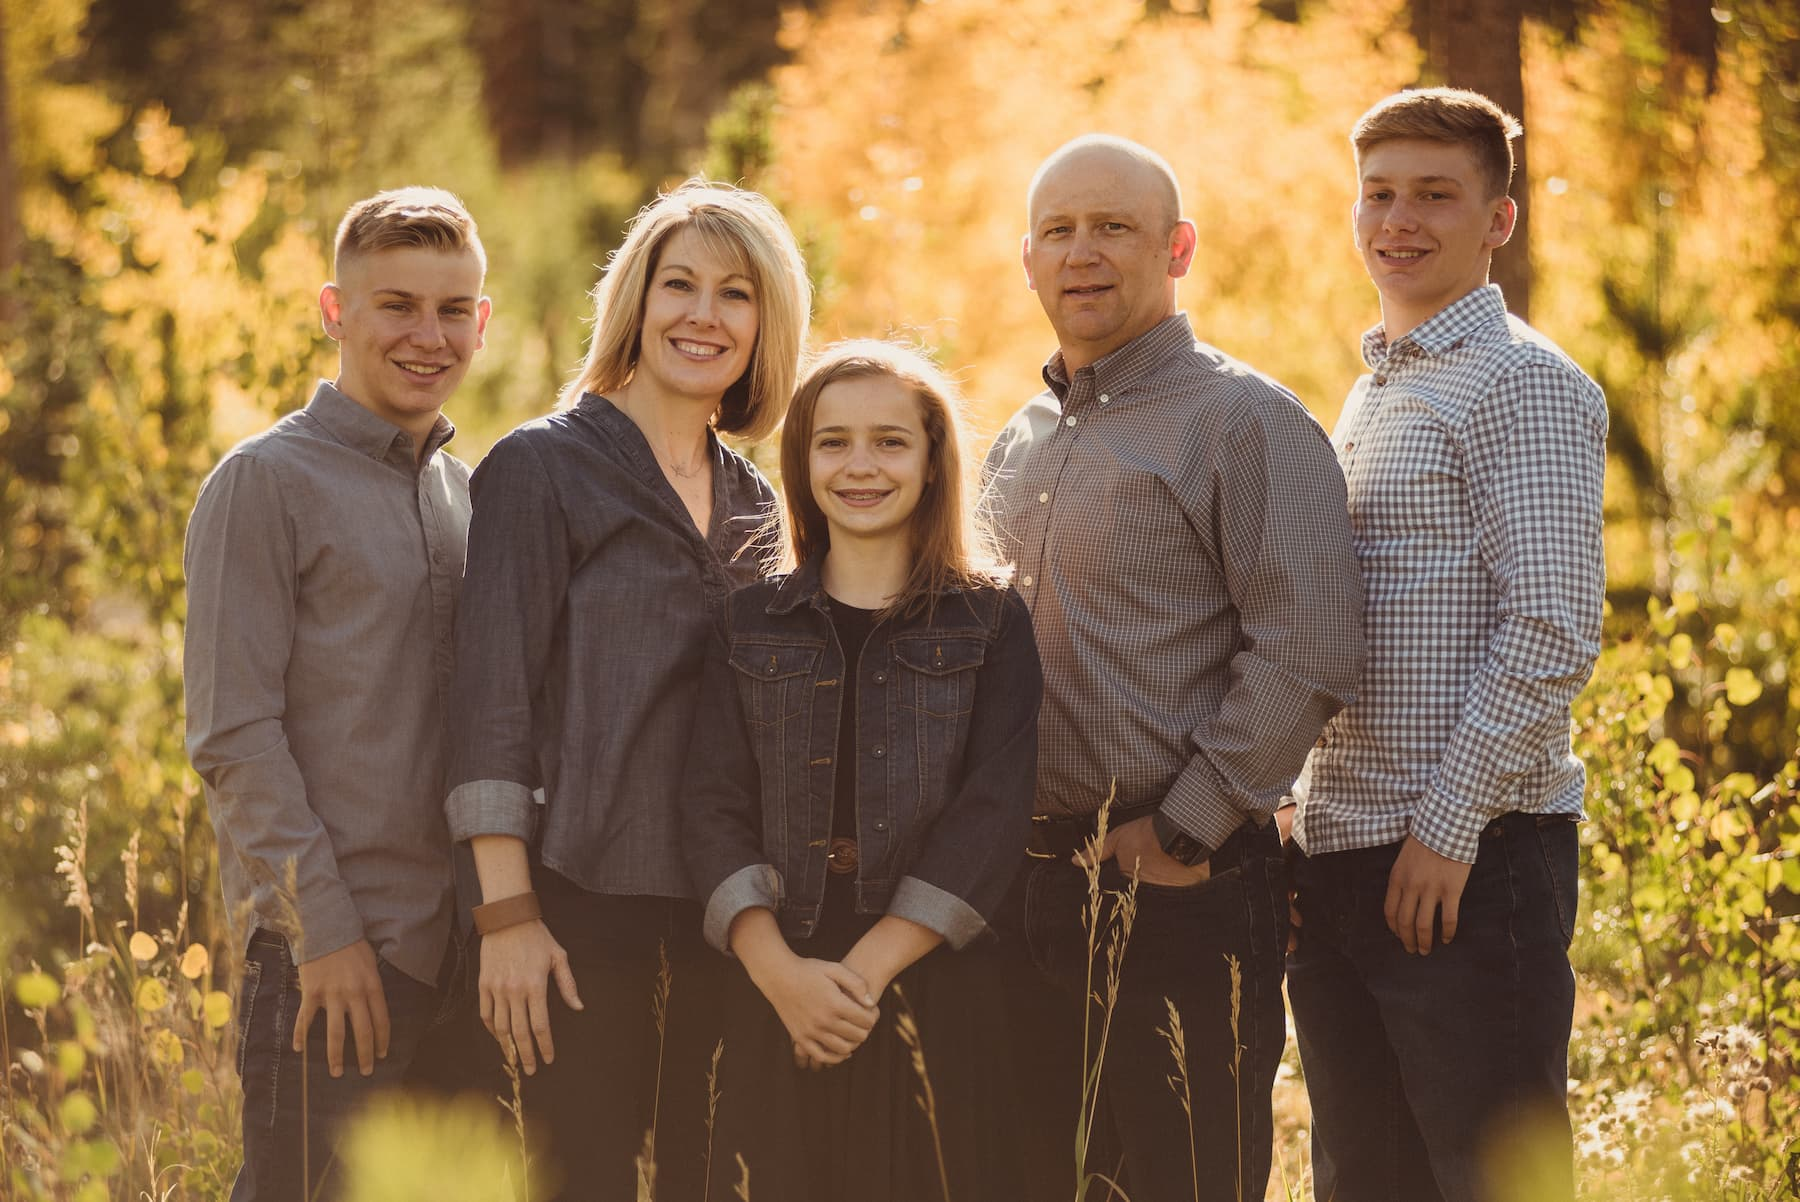 Jeremy Sell and family